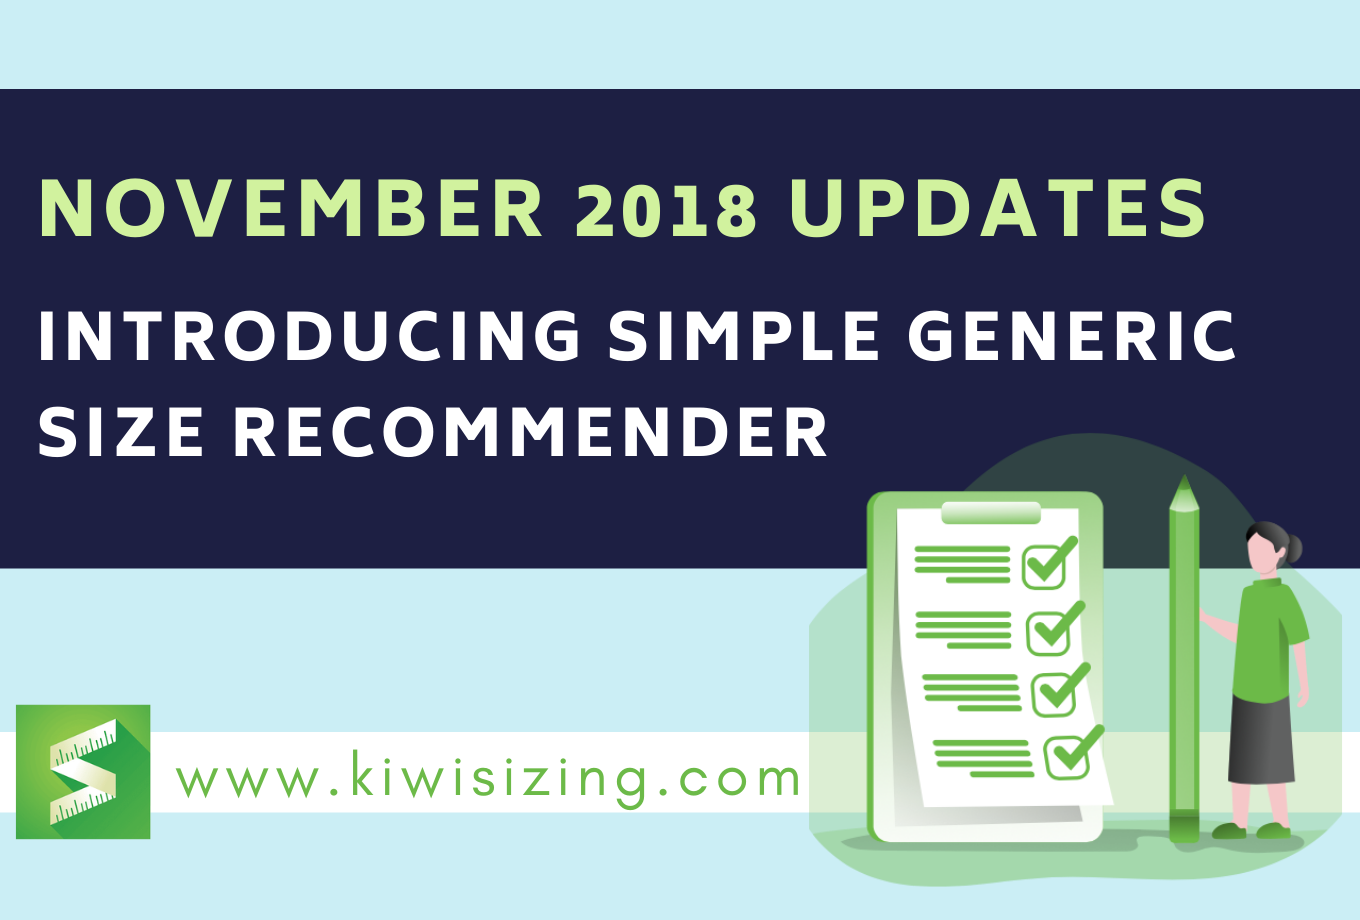 November 2018 Updates: Introducing Simple Generic Size Recommender